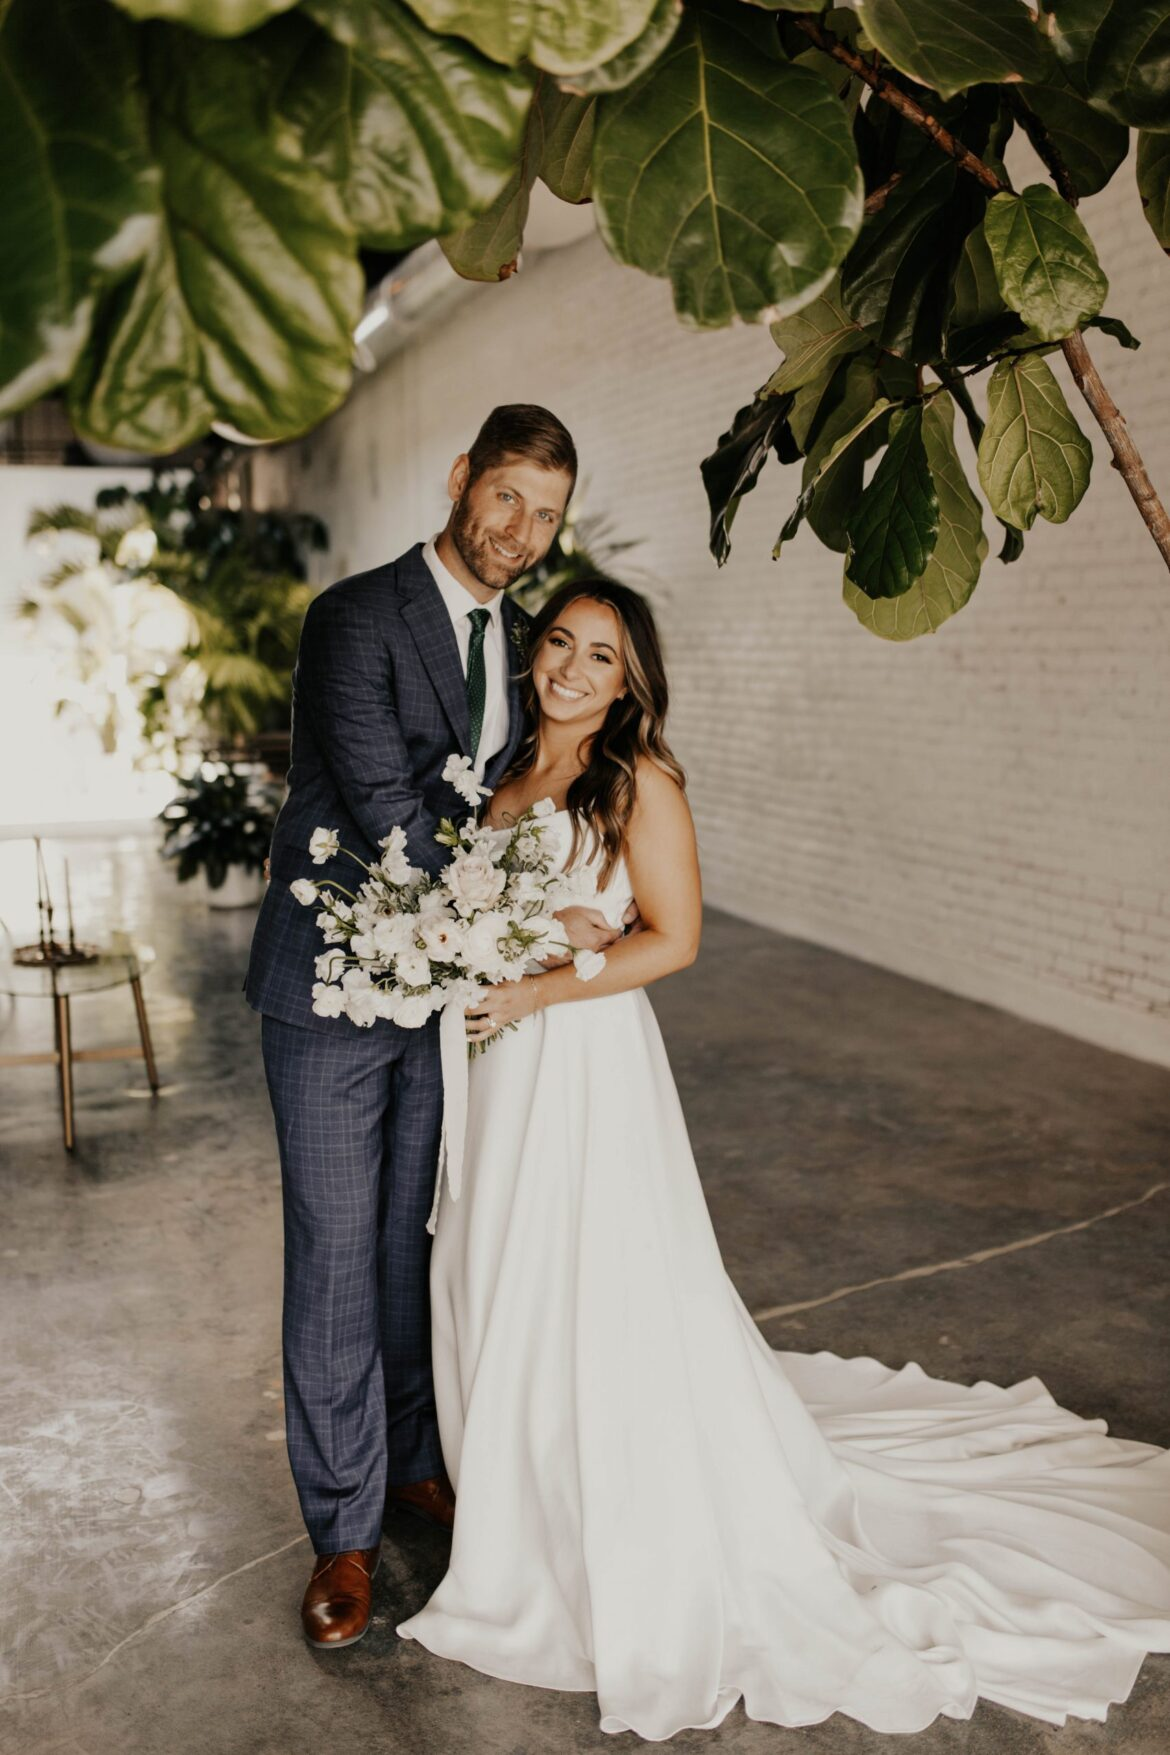 An Intimate Ceremony That Celebrates Love and Family